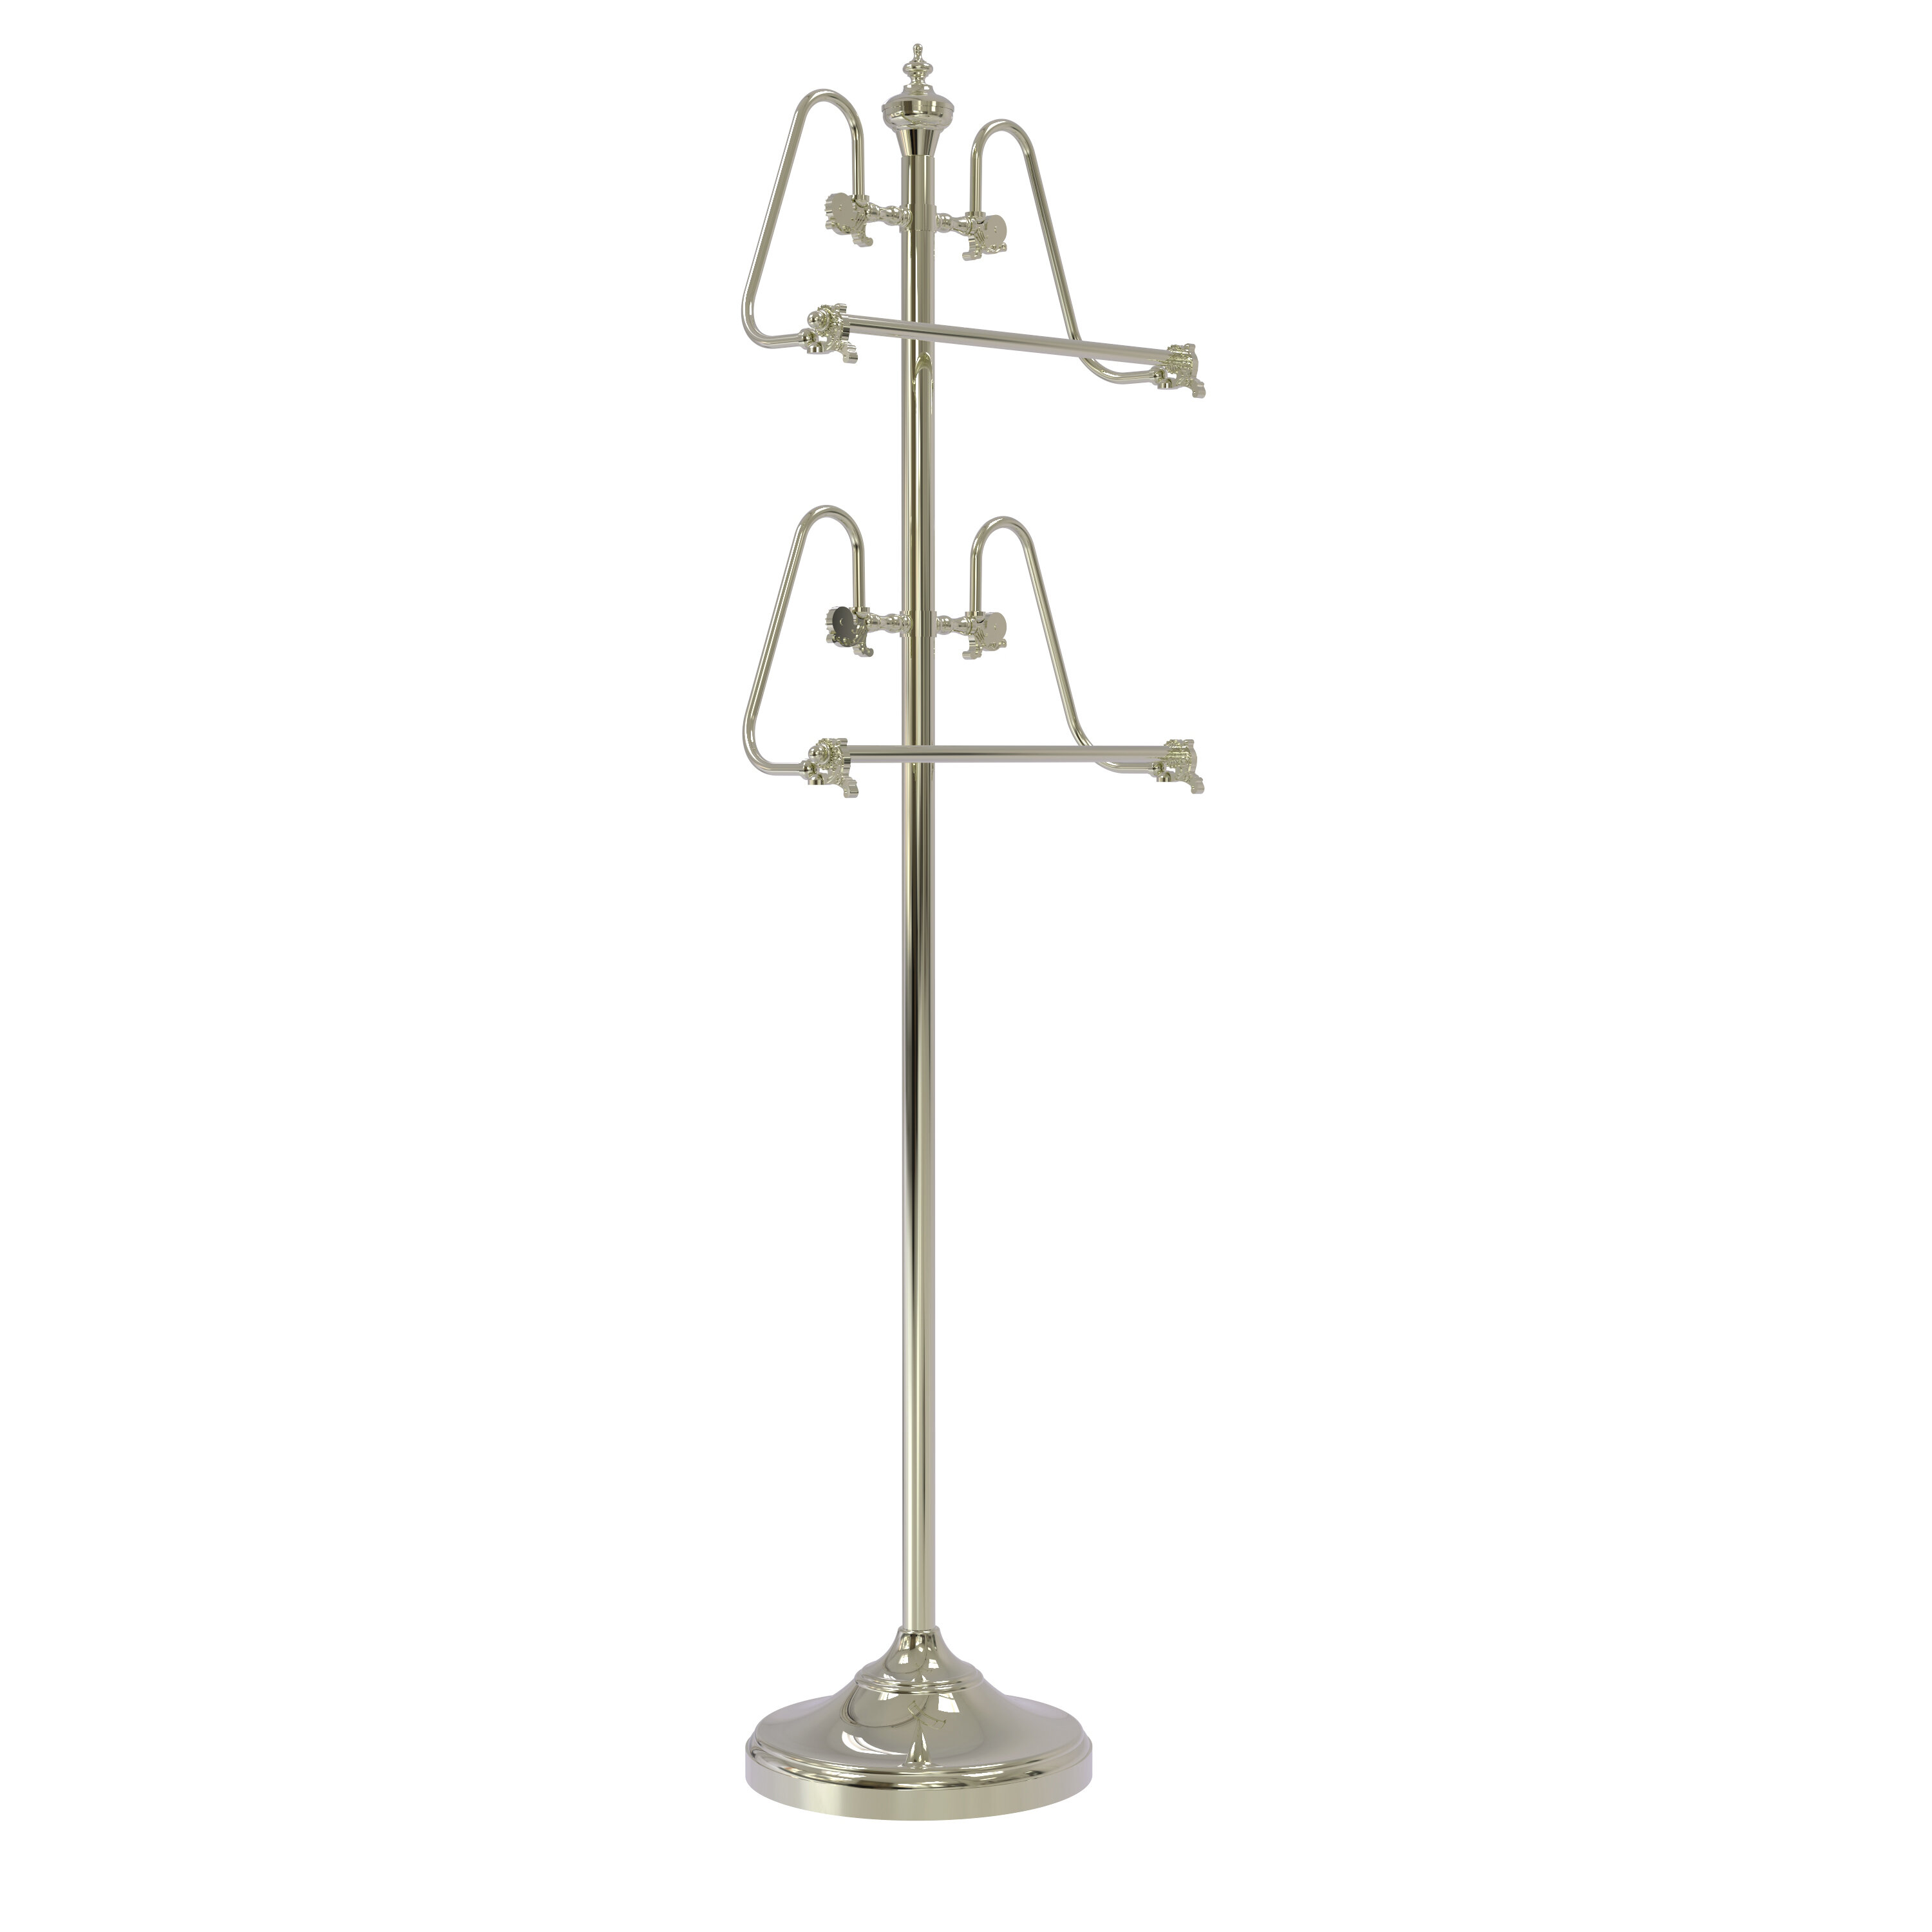 Polished Nickel Towel Stands Towel Bars Racks And Stands You Ll Love In 2021 Wayfair